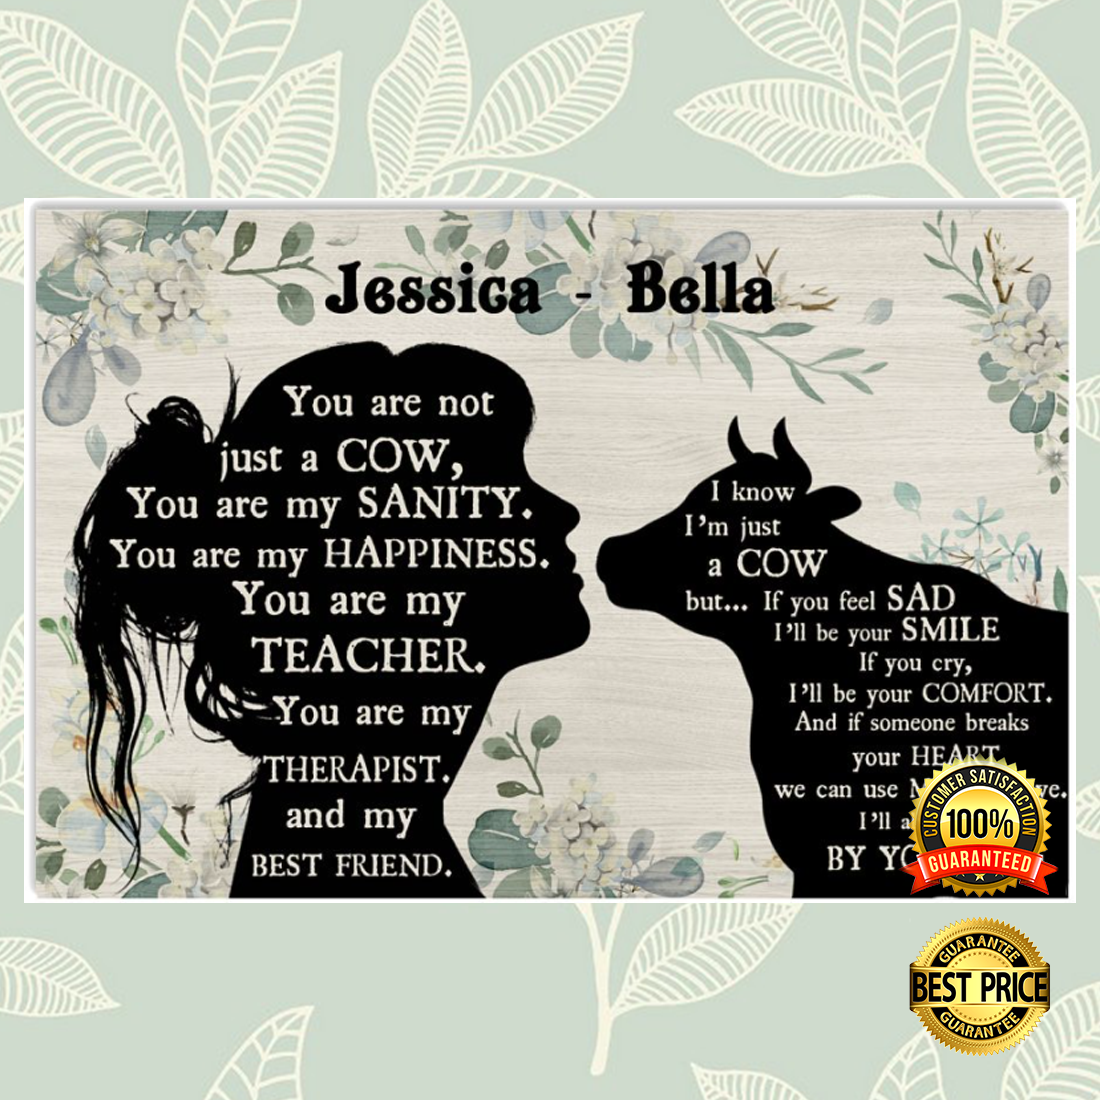 PERSONALIZED GIRL AND COW YOU ARE NOT JUST A COW POSTER 5